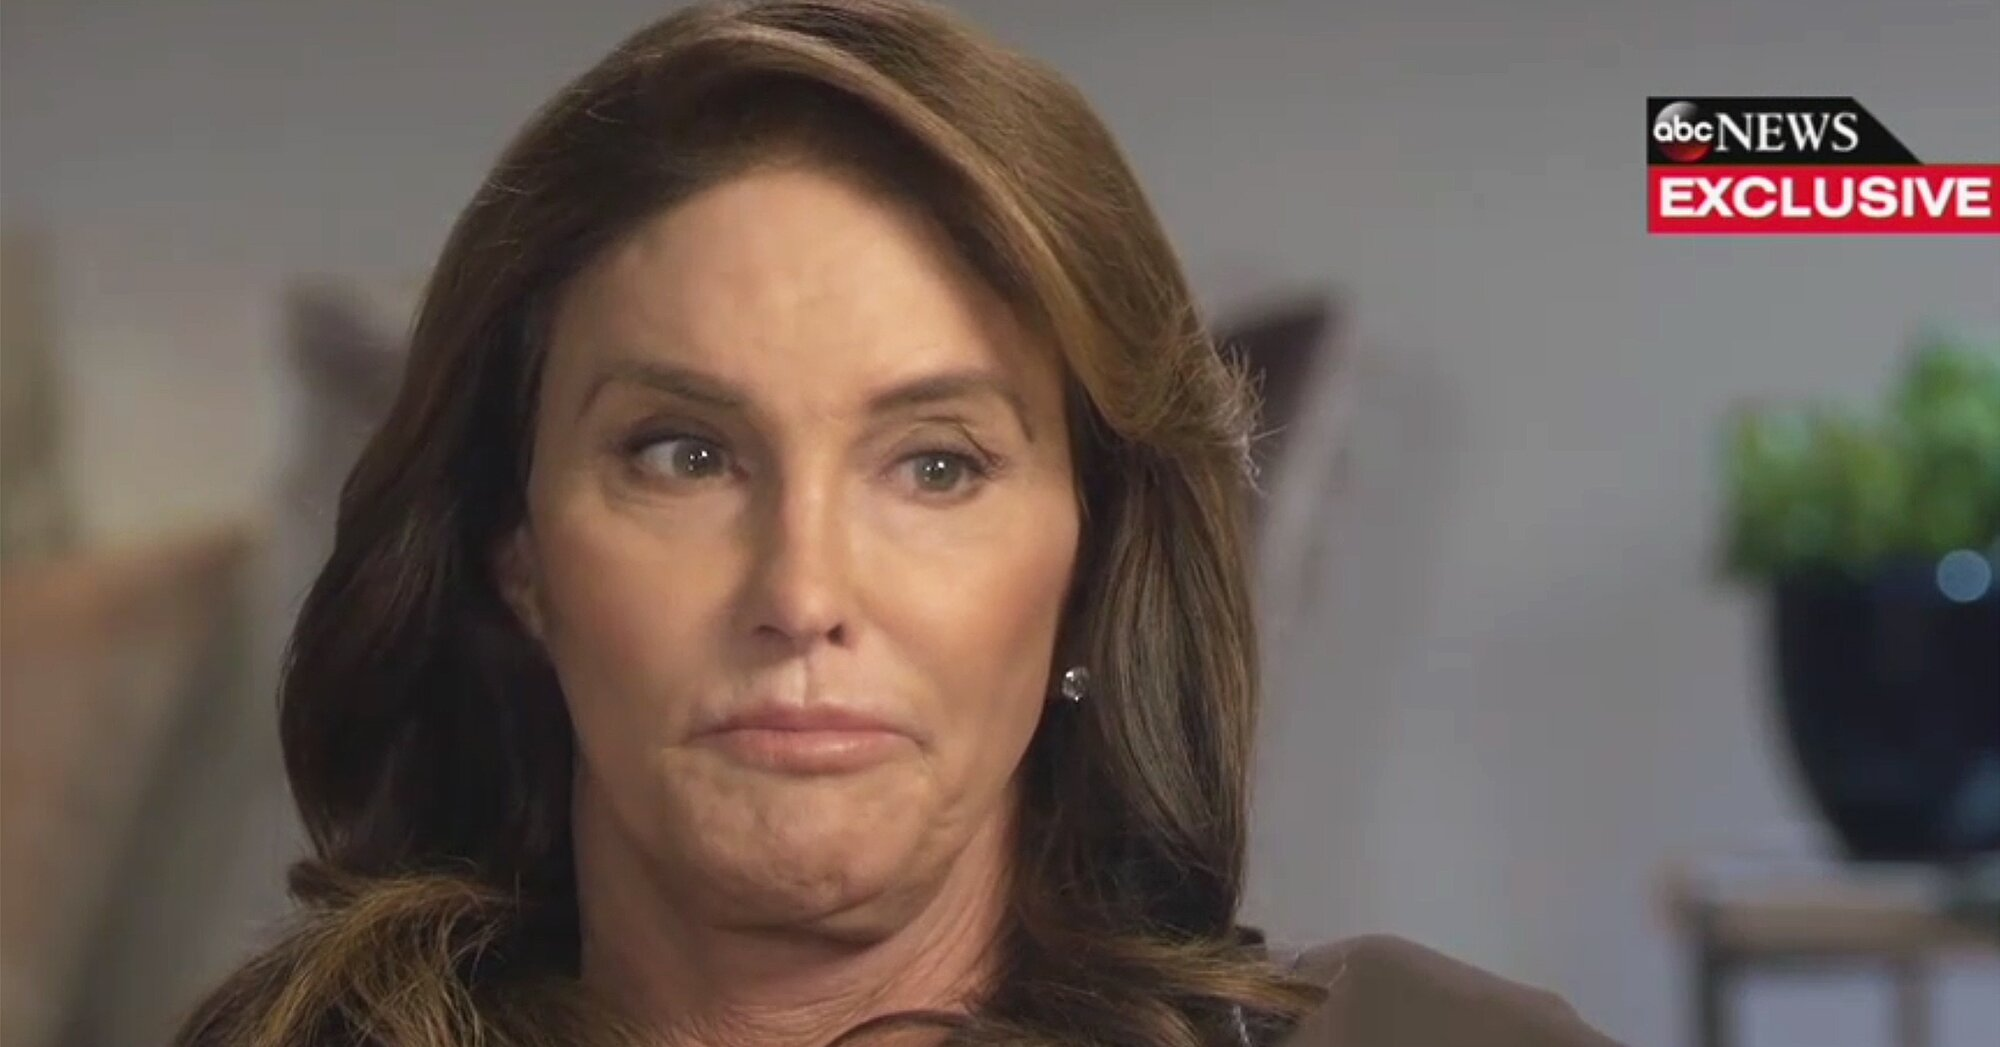 Caitlyn Jenner Admits She's Grown Distant from Some in the Kardashian Clan: 'Some I've Remained Very Close To'